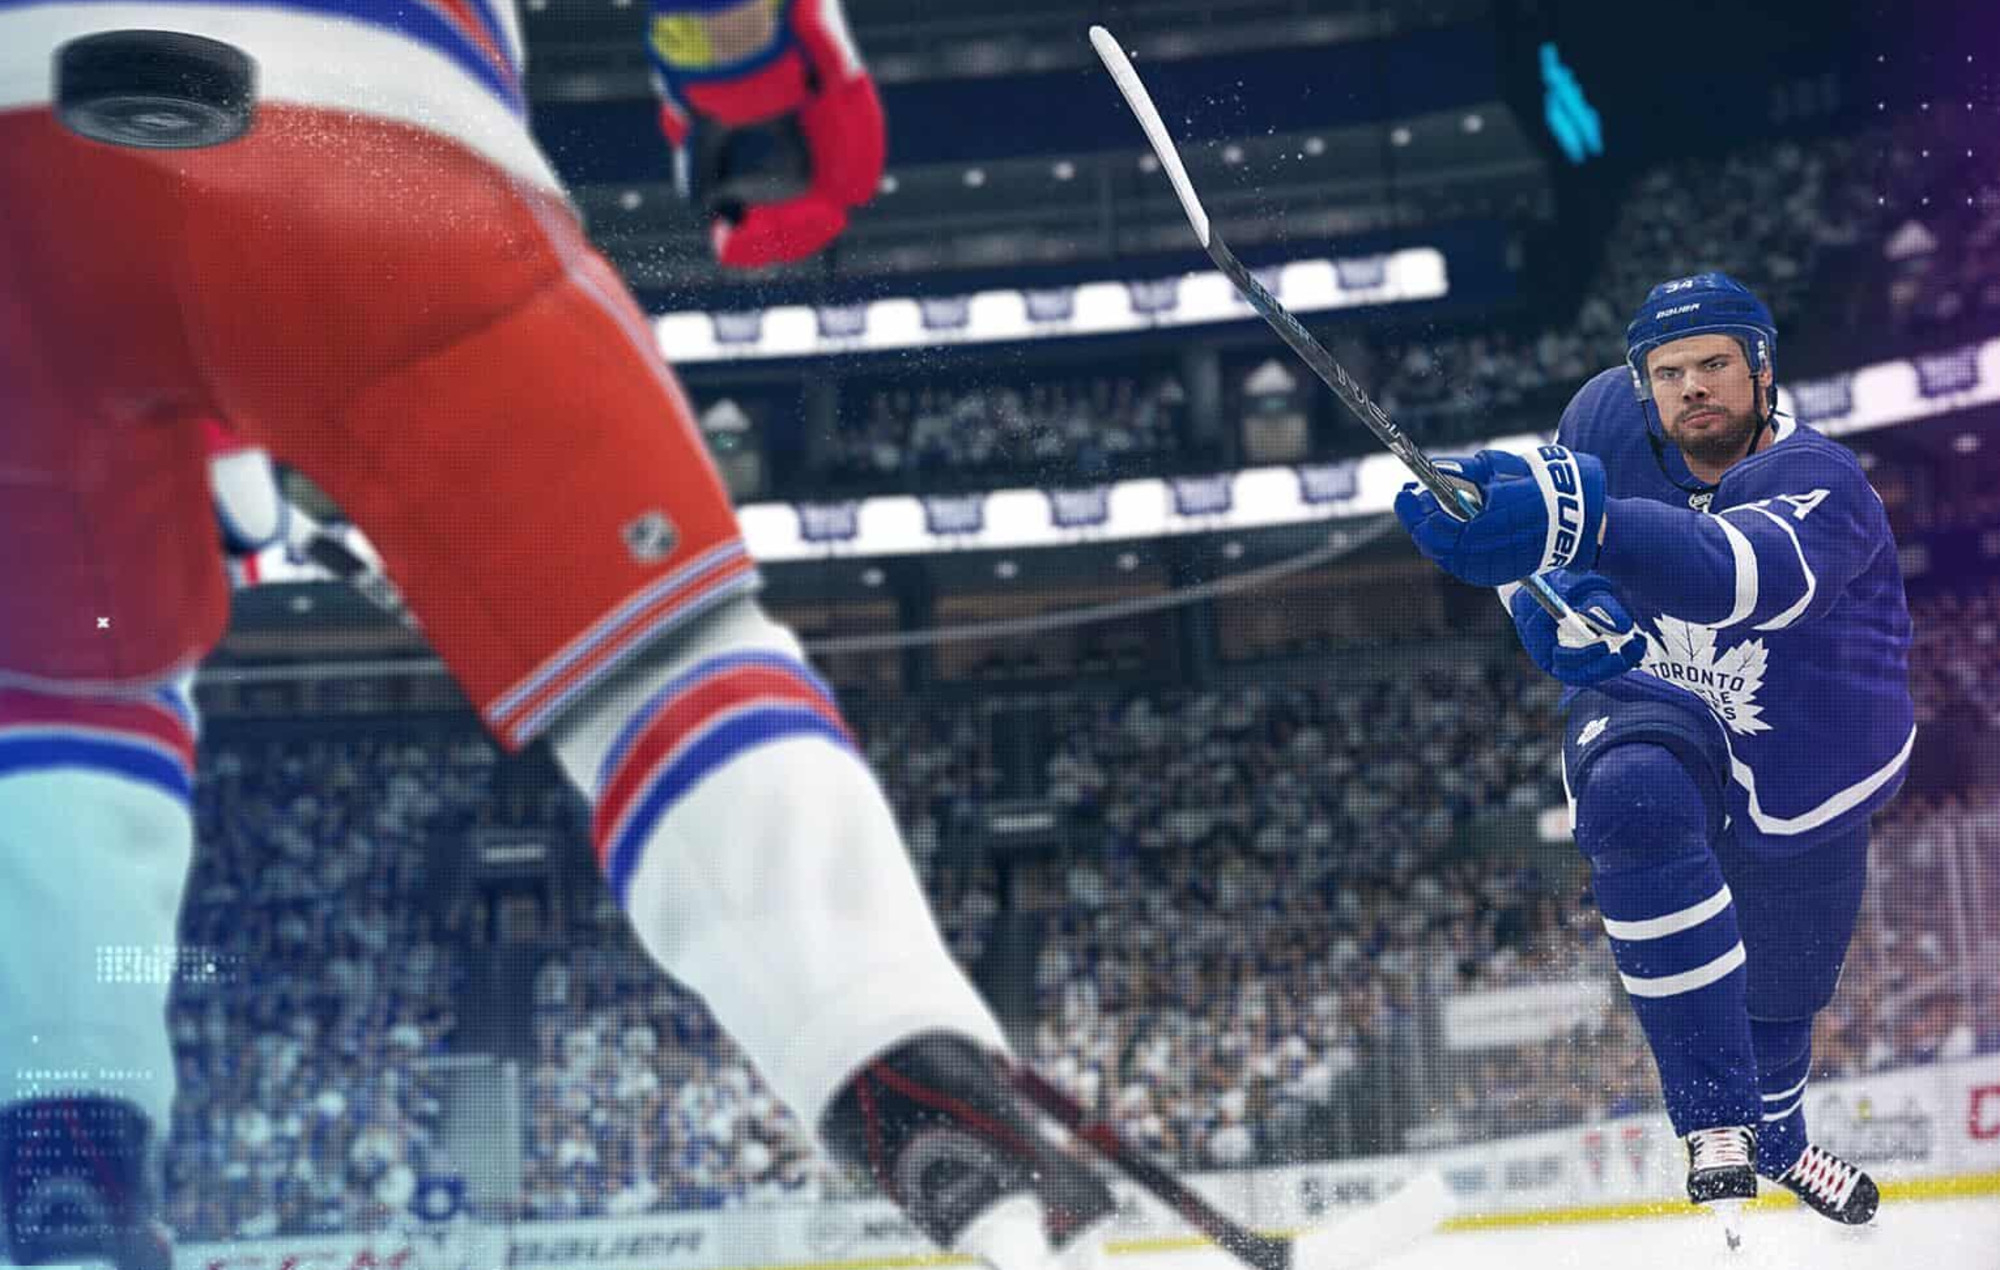 NHL 21 March 2021 Update – What's New in the 1.5 Patch Notes?